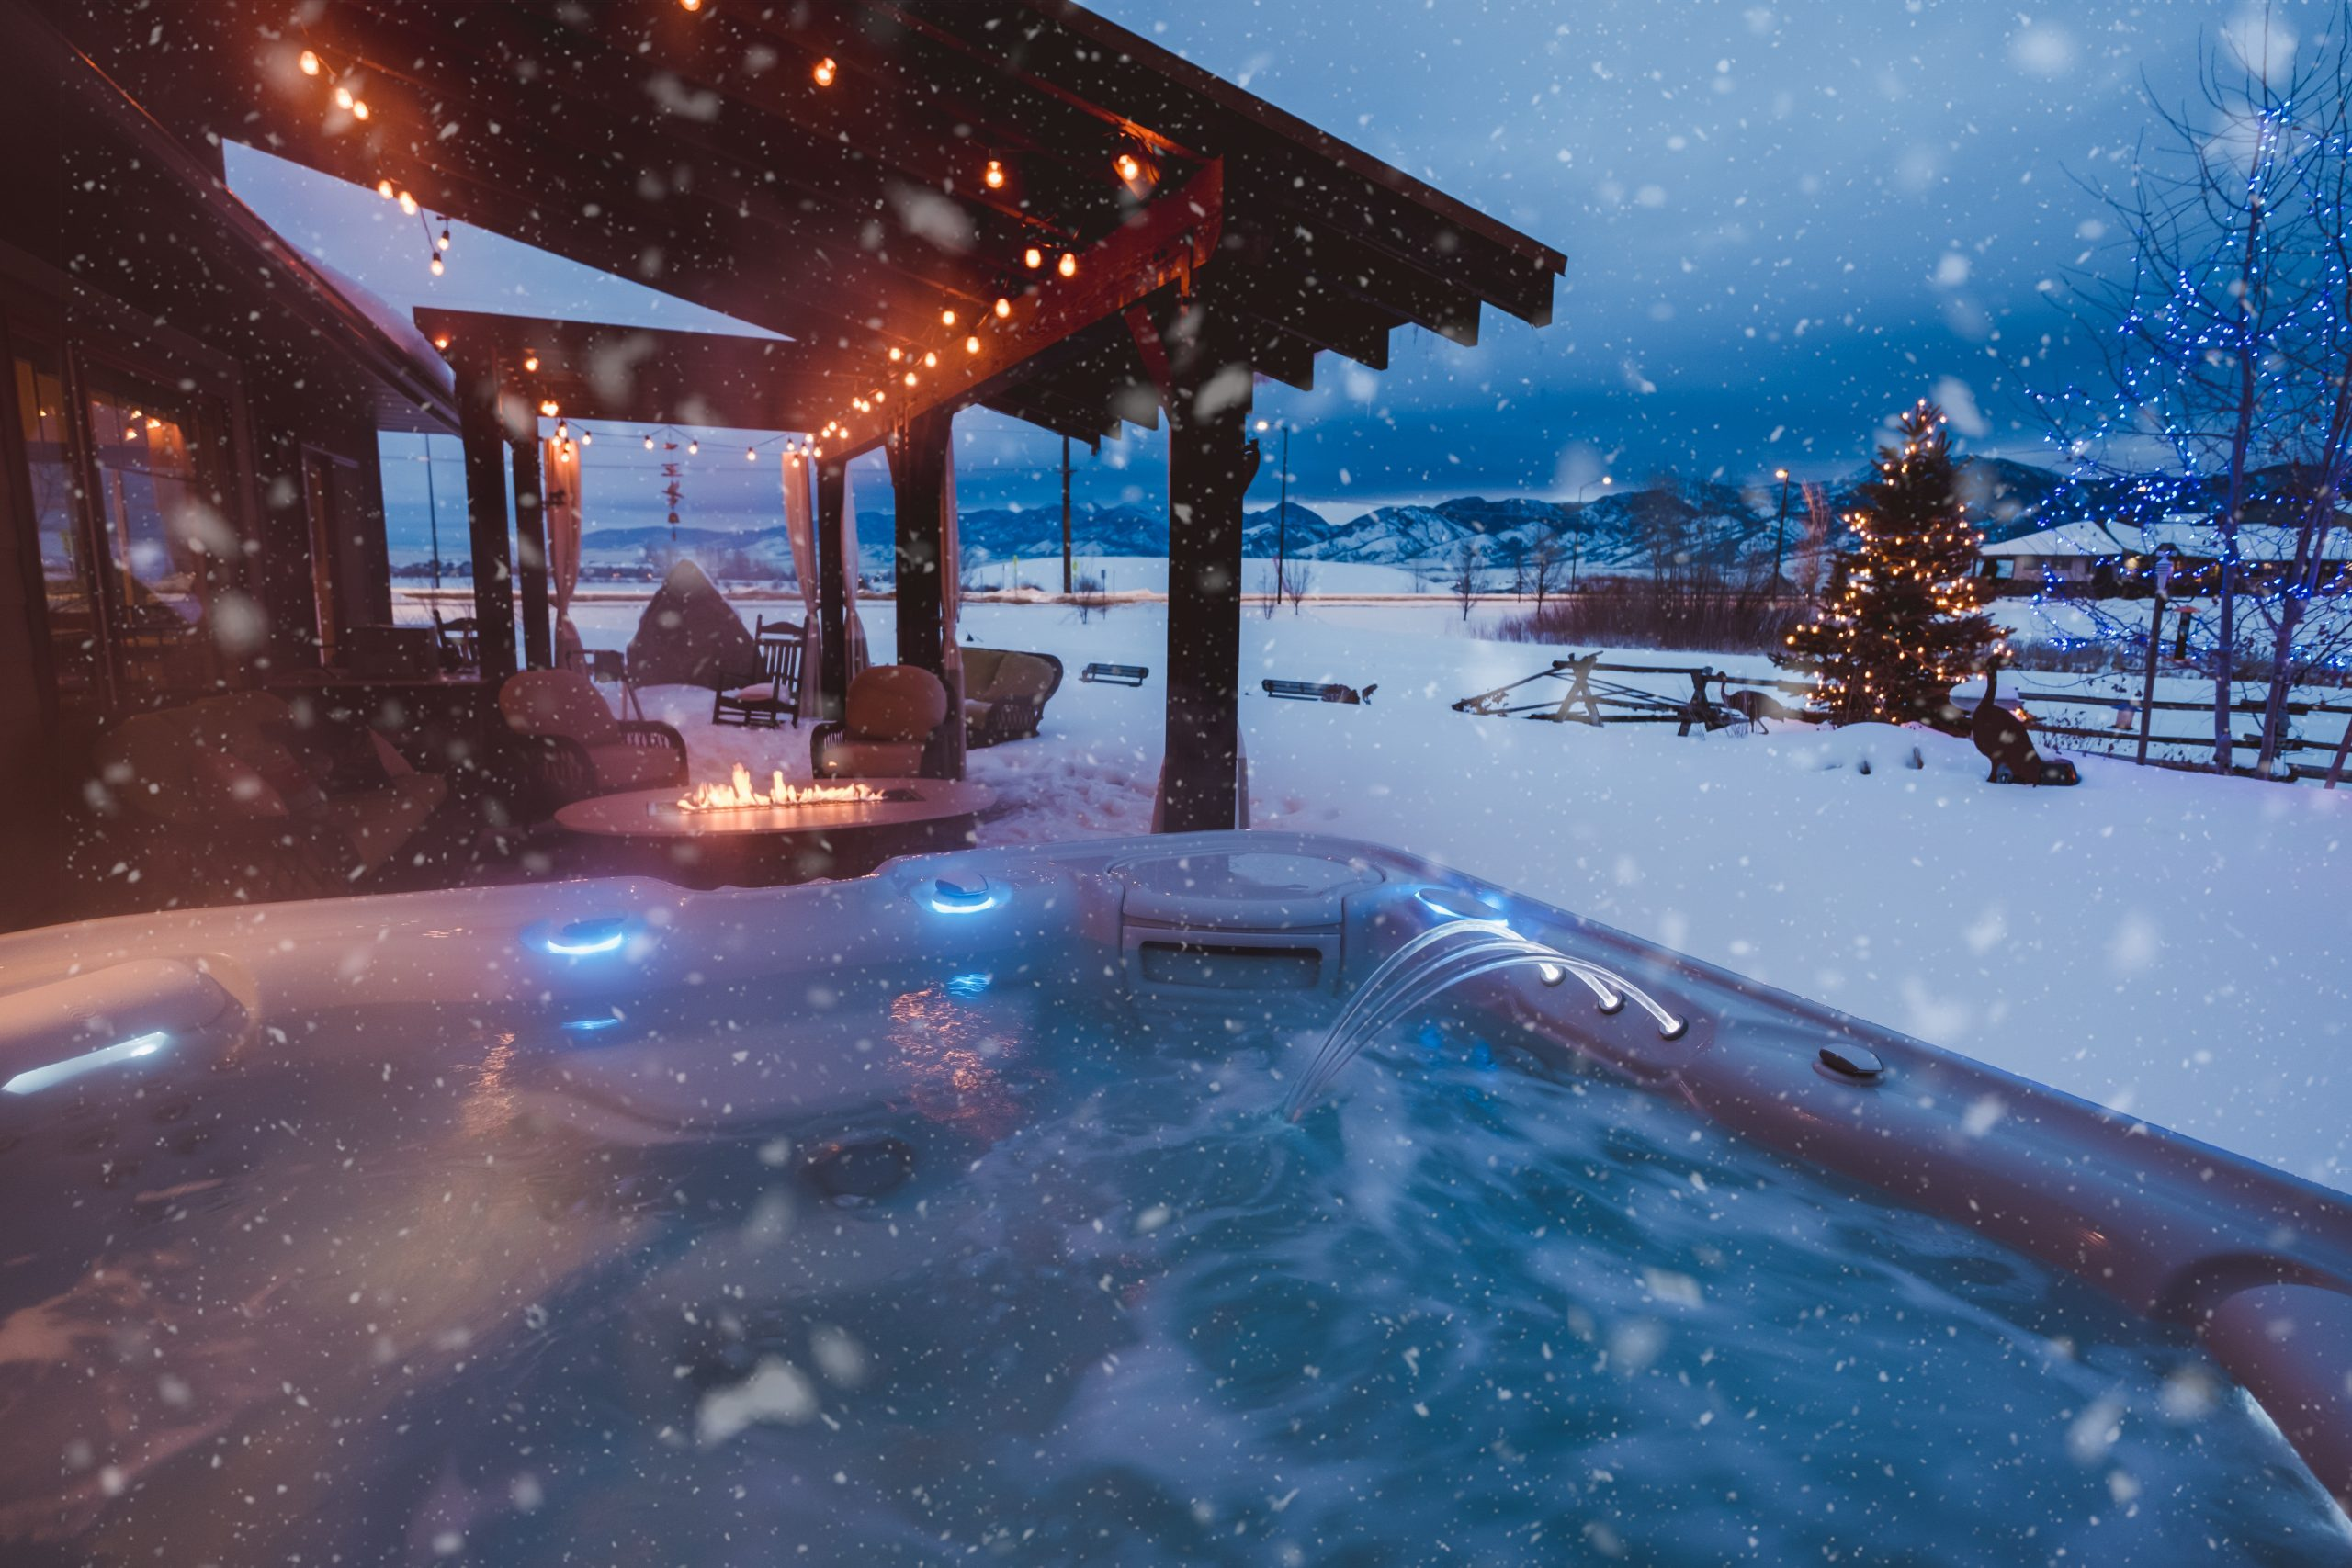 HEALTH BENEFITS OF USING A HOT TUB IN WINTER